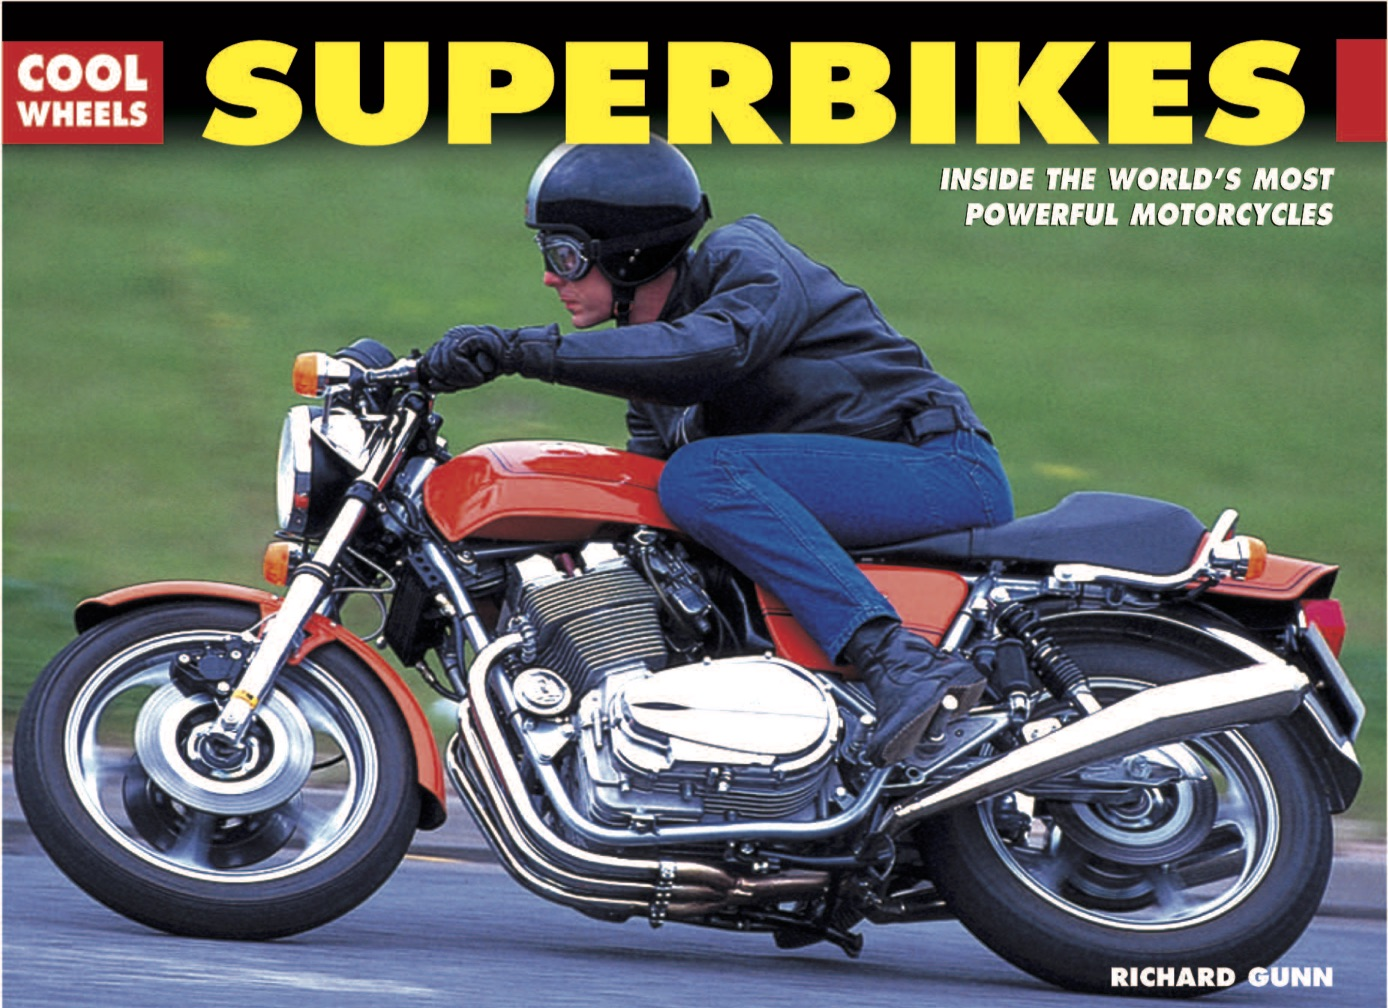 Cool Wheels: Superbikes